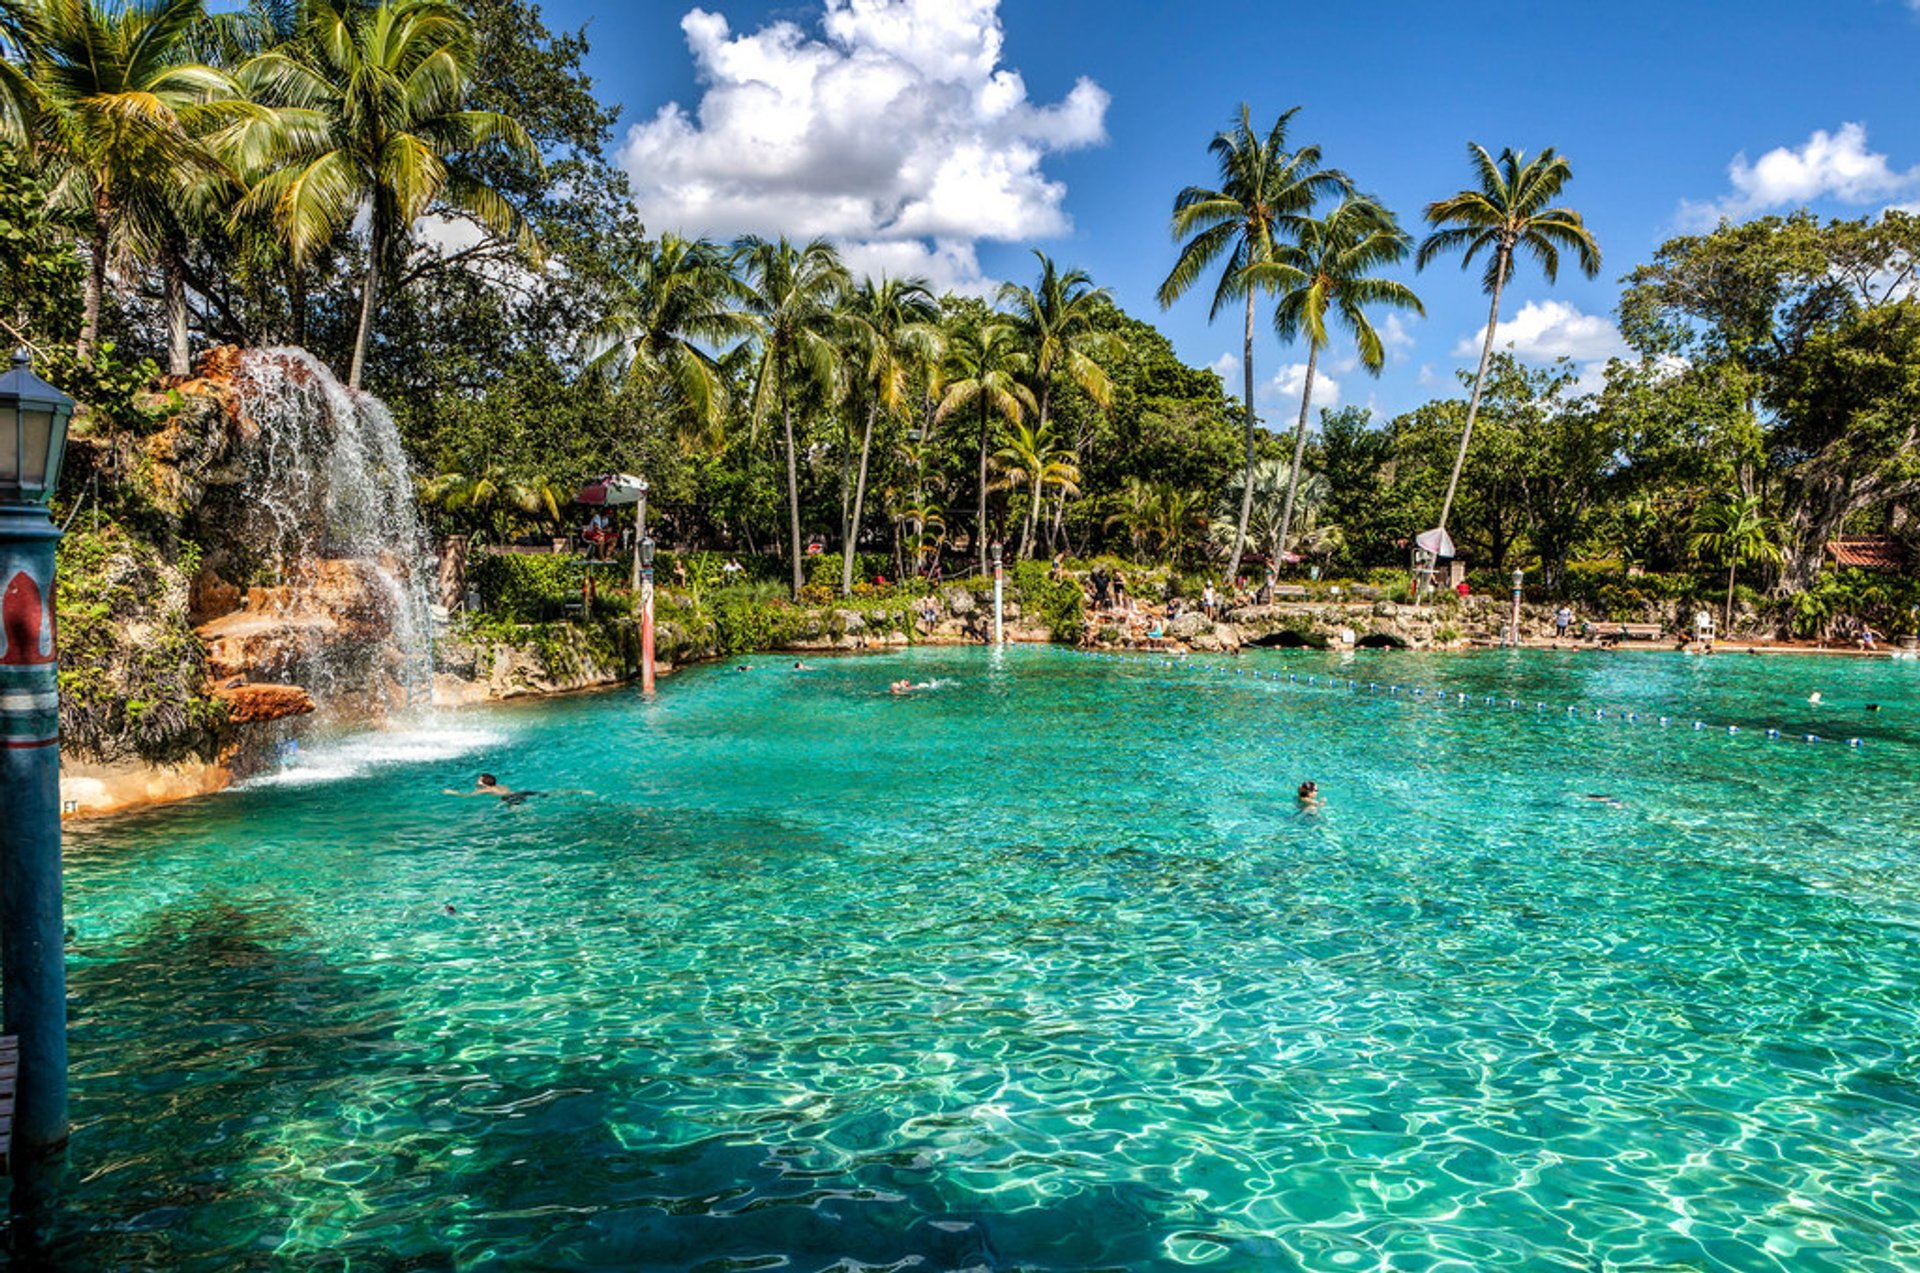 Best time for Venetian Pool, Coral Gables in Florida 2019